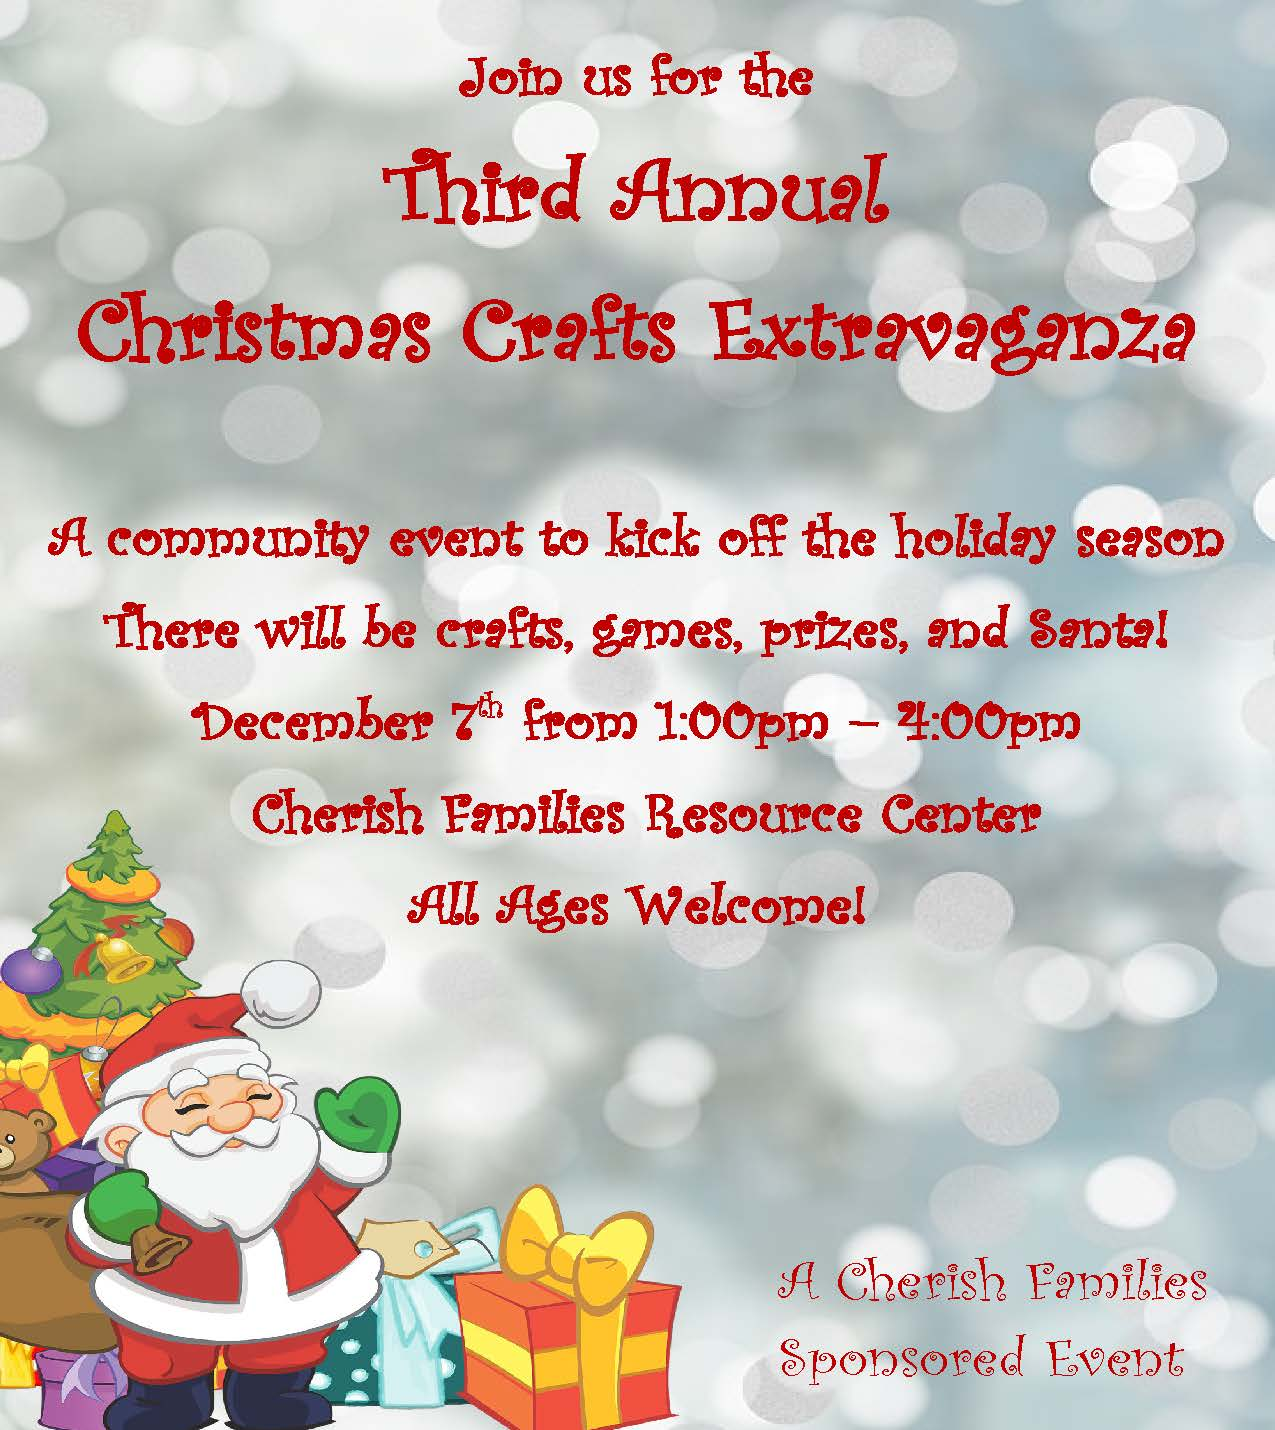 Third Annual Christmas Crafts Extravaganza